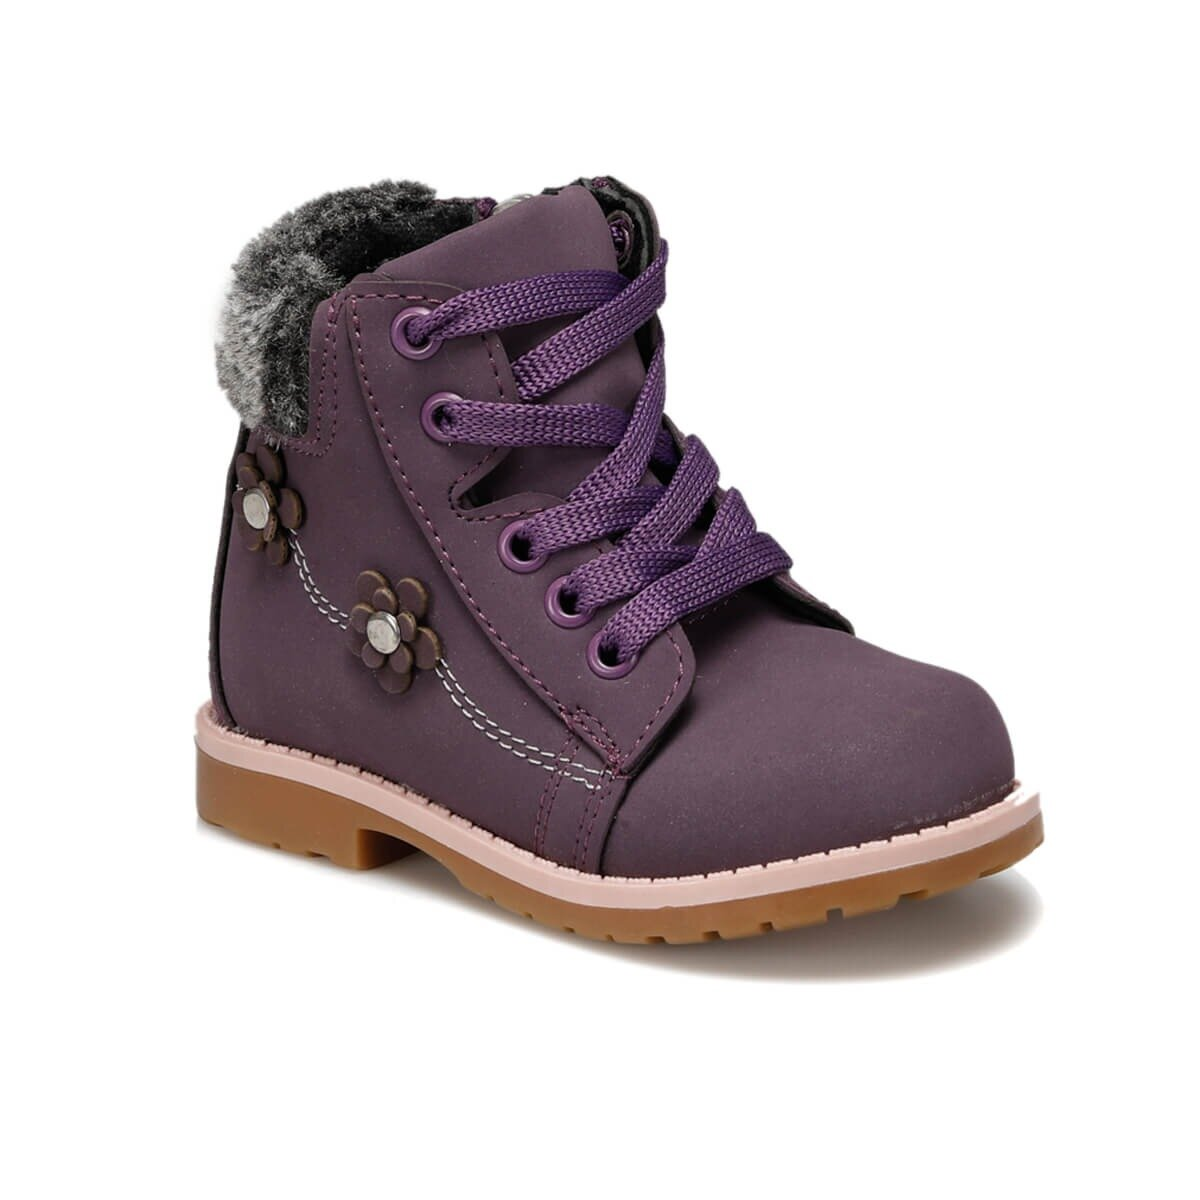 FLO MINA Purple Female Child Boots Balloon-s